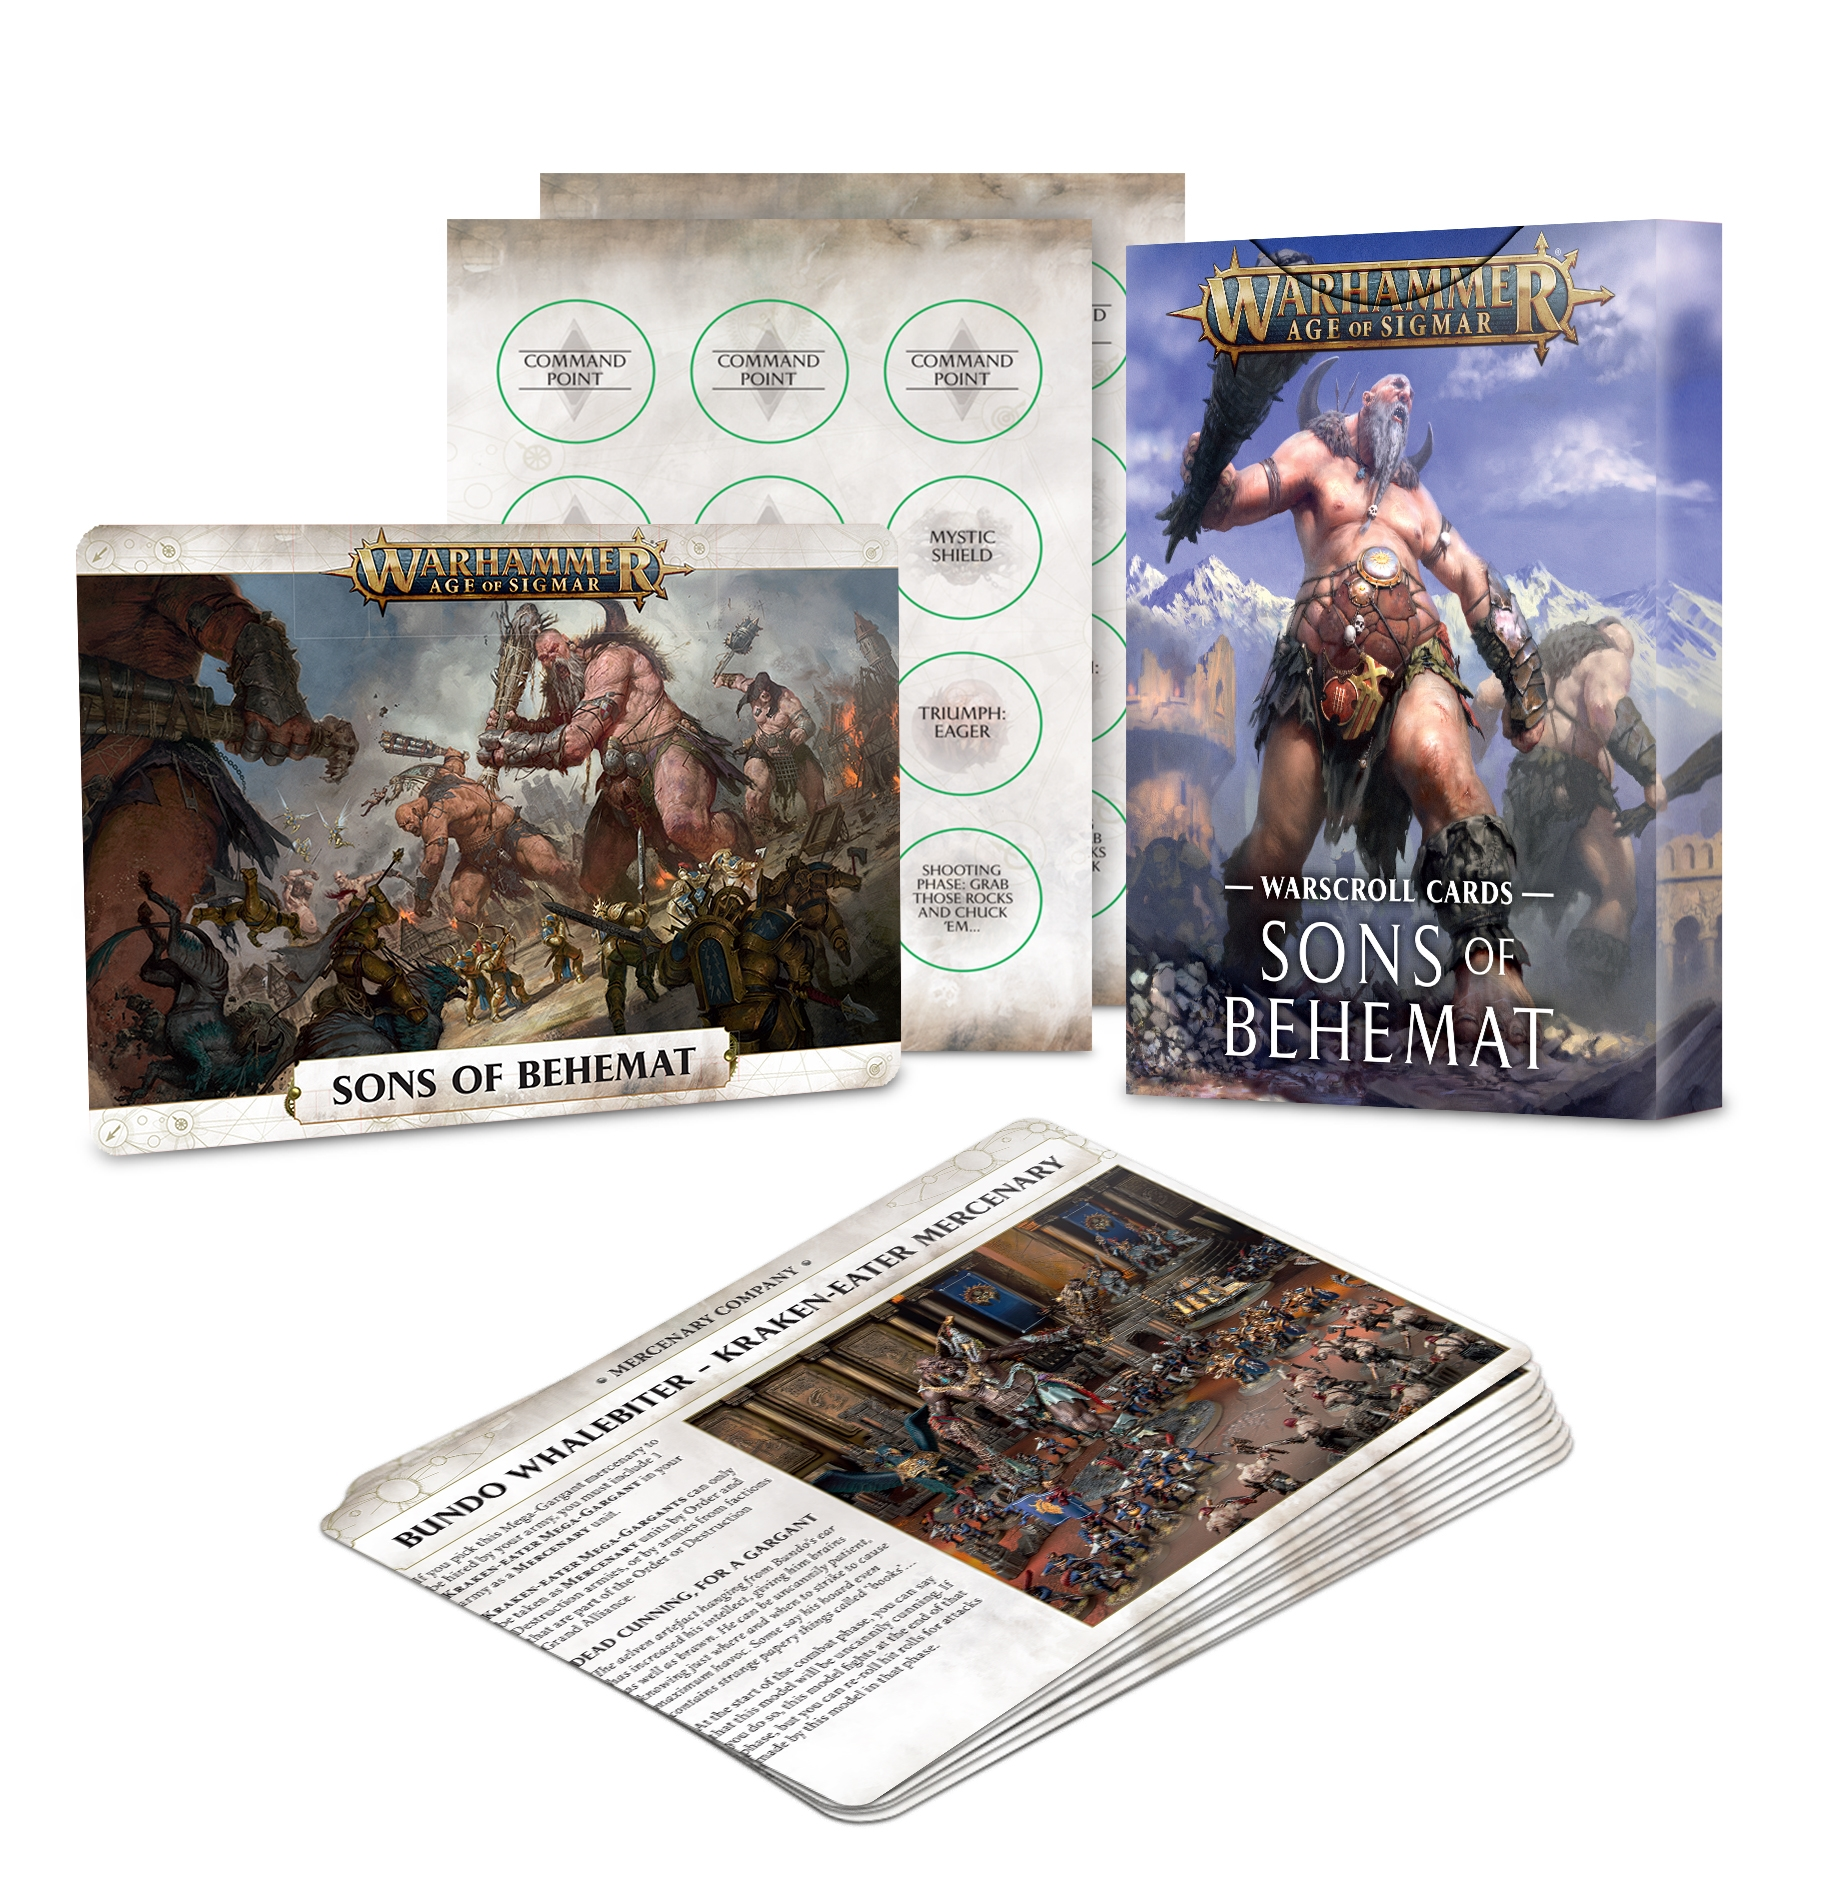 Warhammer Age of Sigmar: Warscroll Cards: Sons of Behemat